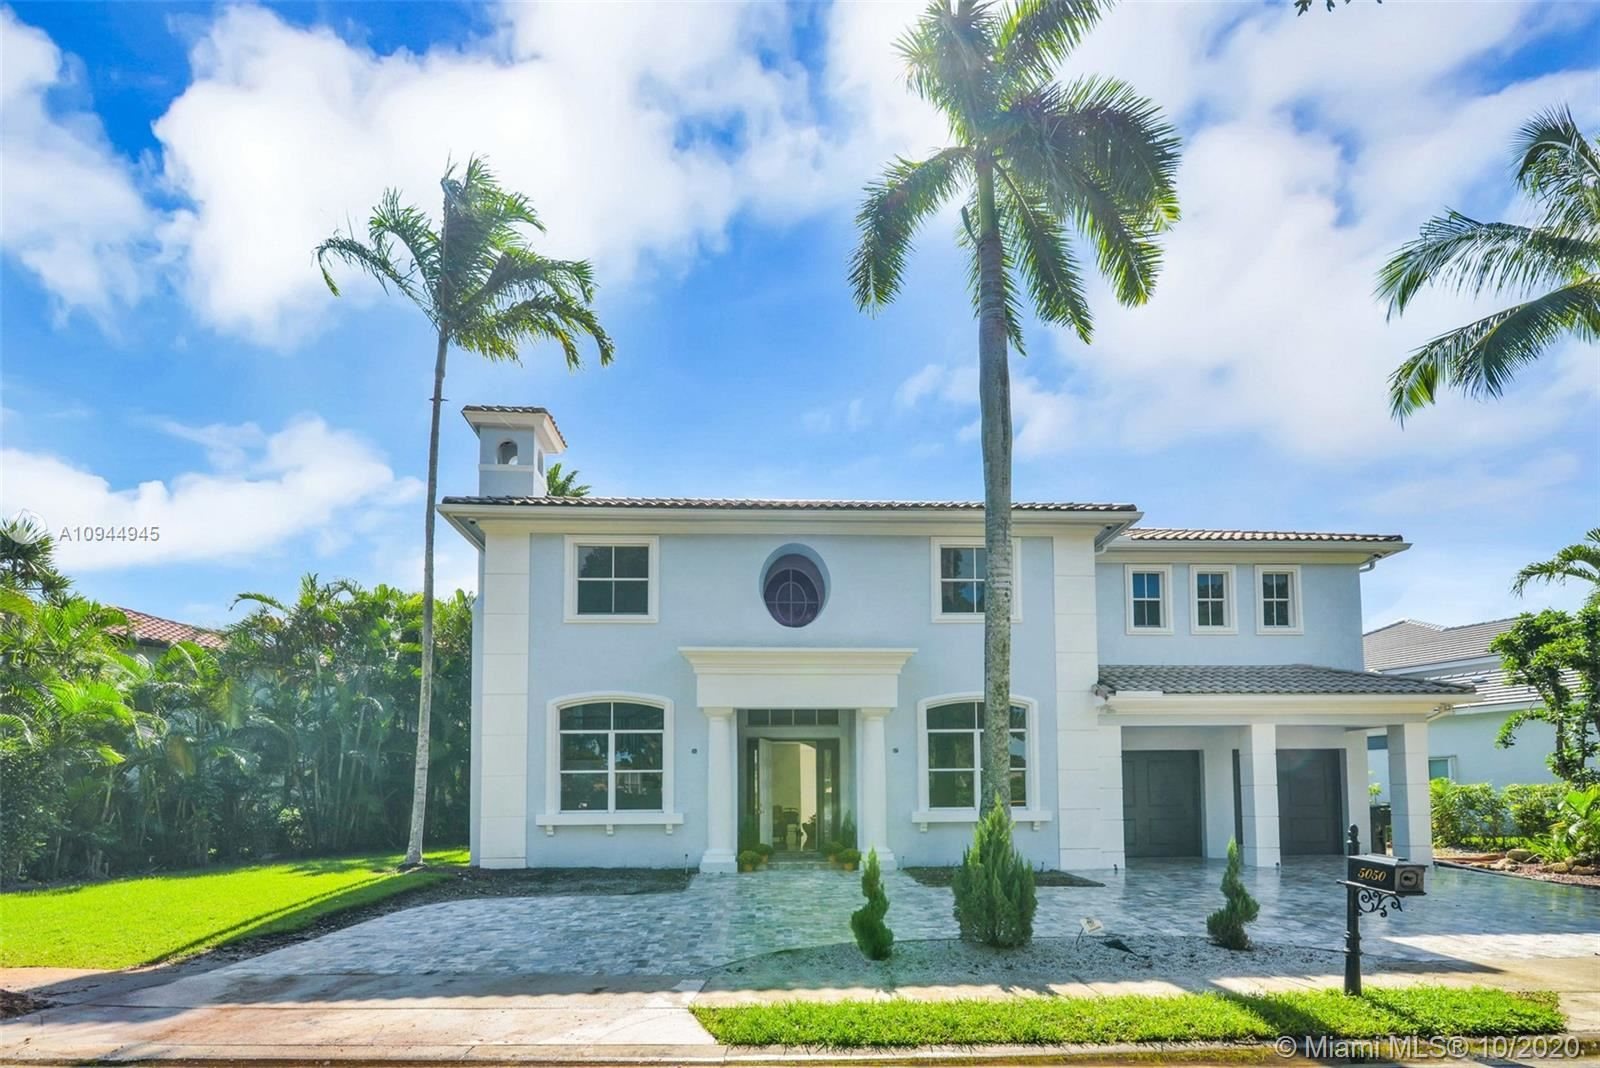 5050 NW 24th Cir, Boca Raton, FL 33431 - #: A10944945